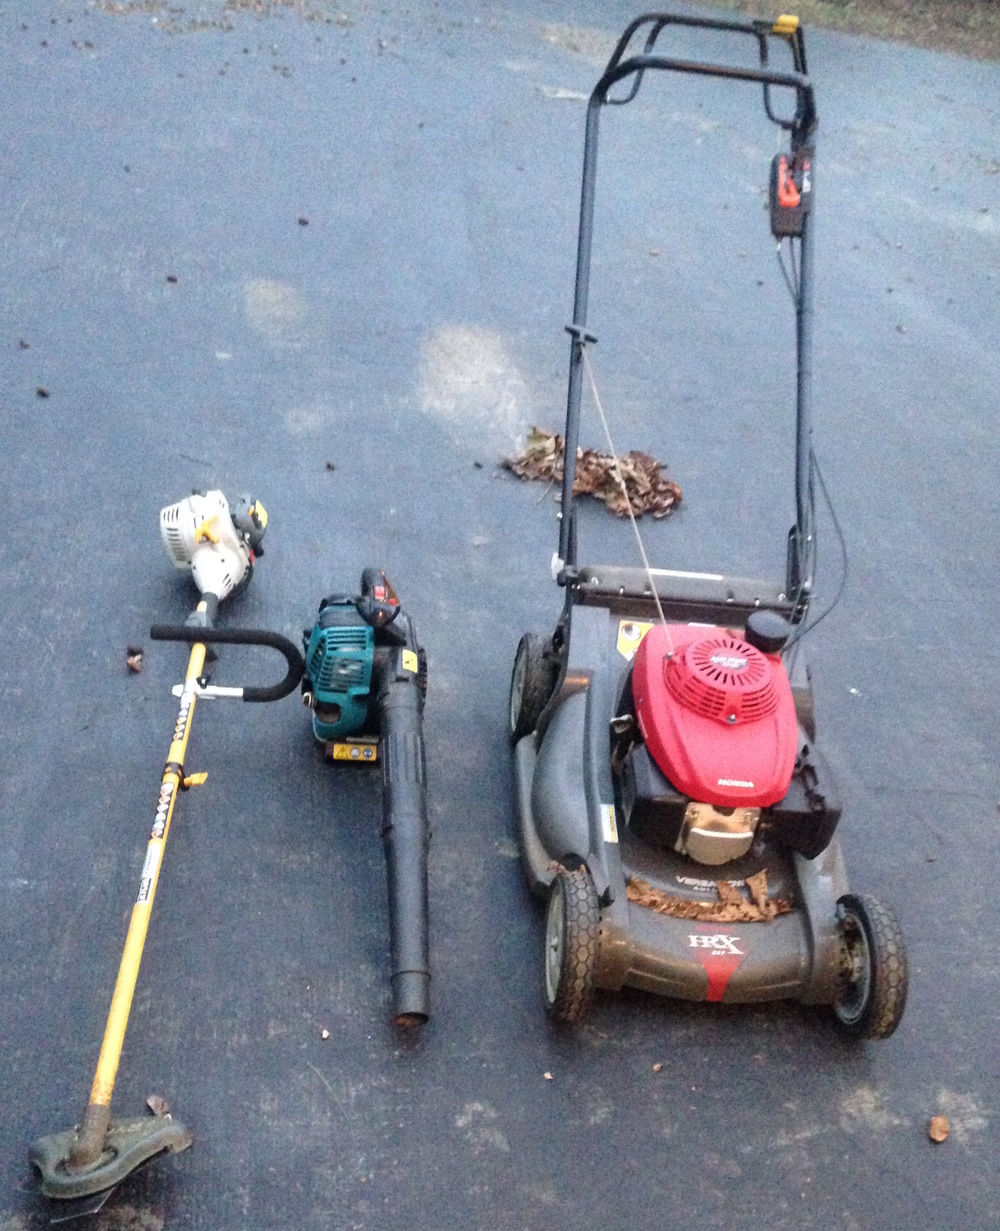 My go-to equipment for keeping my leaves on site: weed whacker, leaf blower, and hand mower.